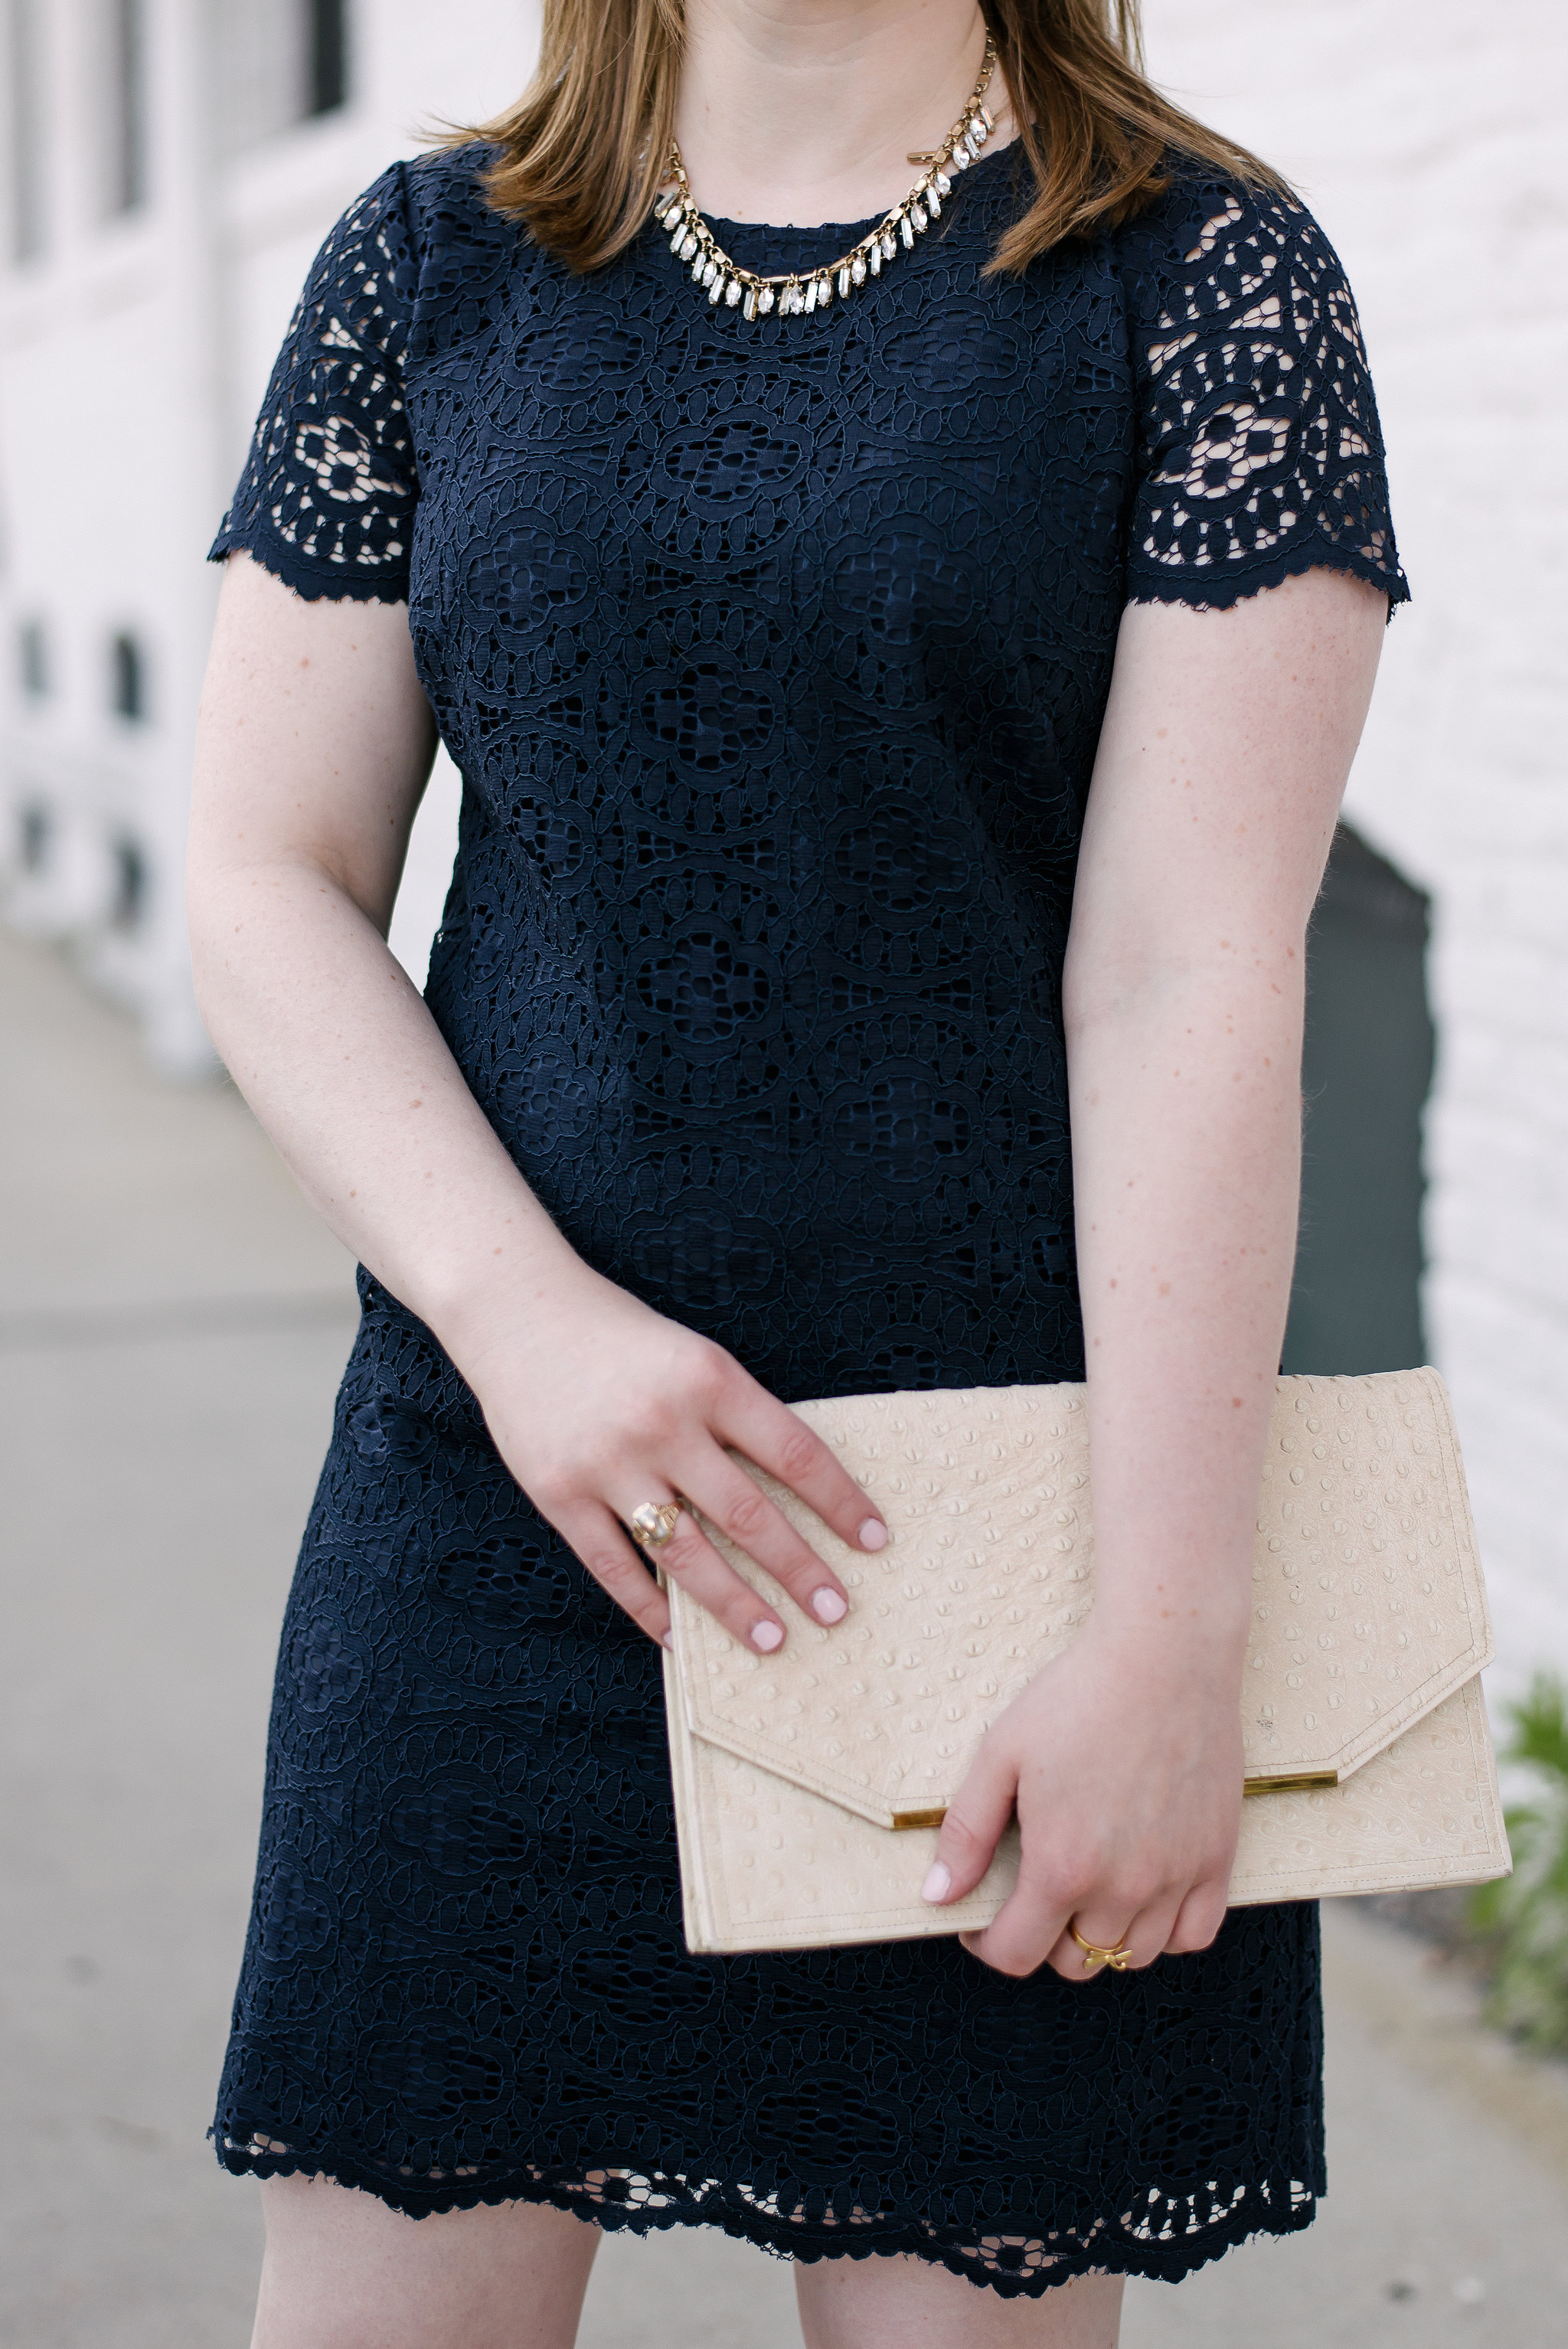 The Best Dresses to Wear to a Wedding | Something Good, @danaerinw , navy lace dress, women's fashion, women's dress, women's style, wedding styles, wedding guest dress